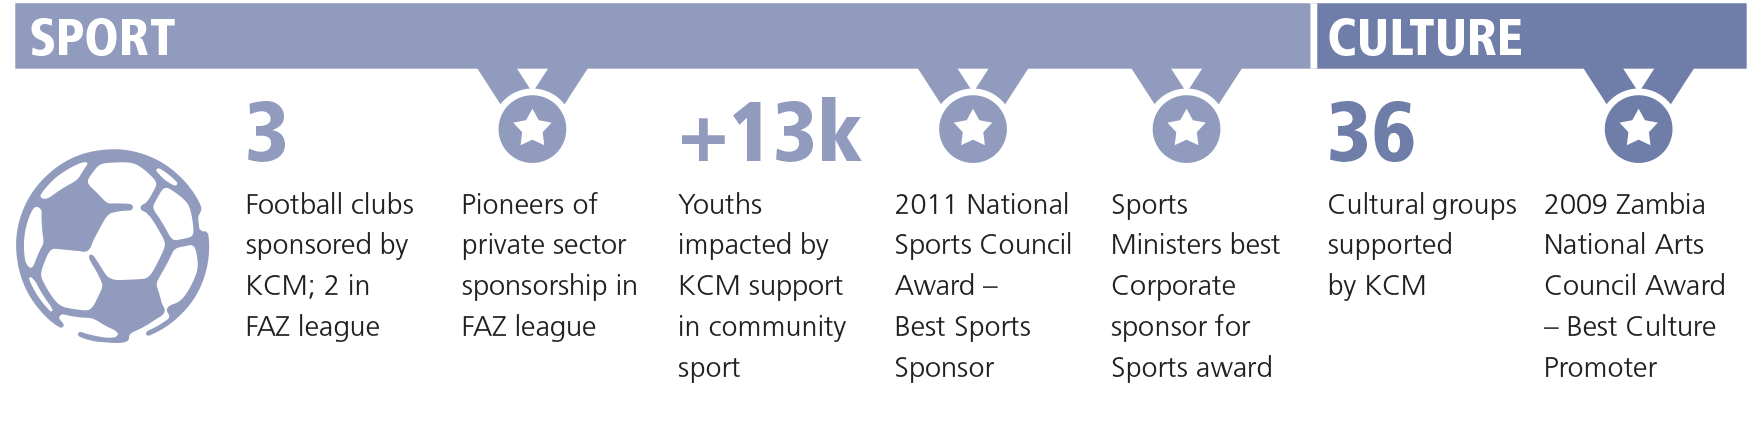 KCM program - Sport and culture [diagram]